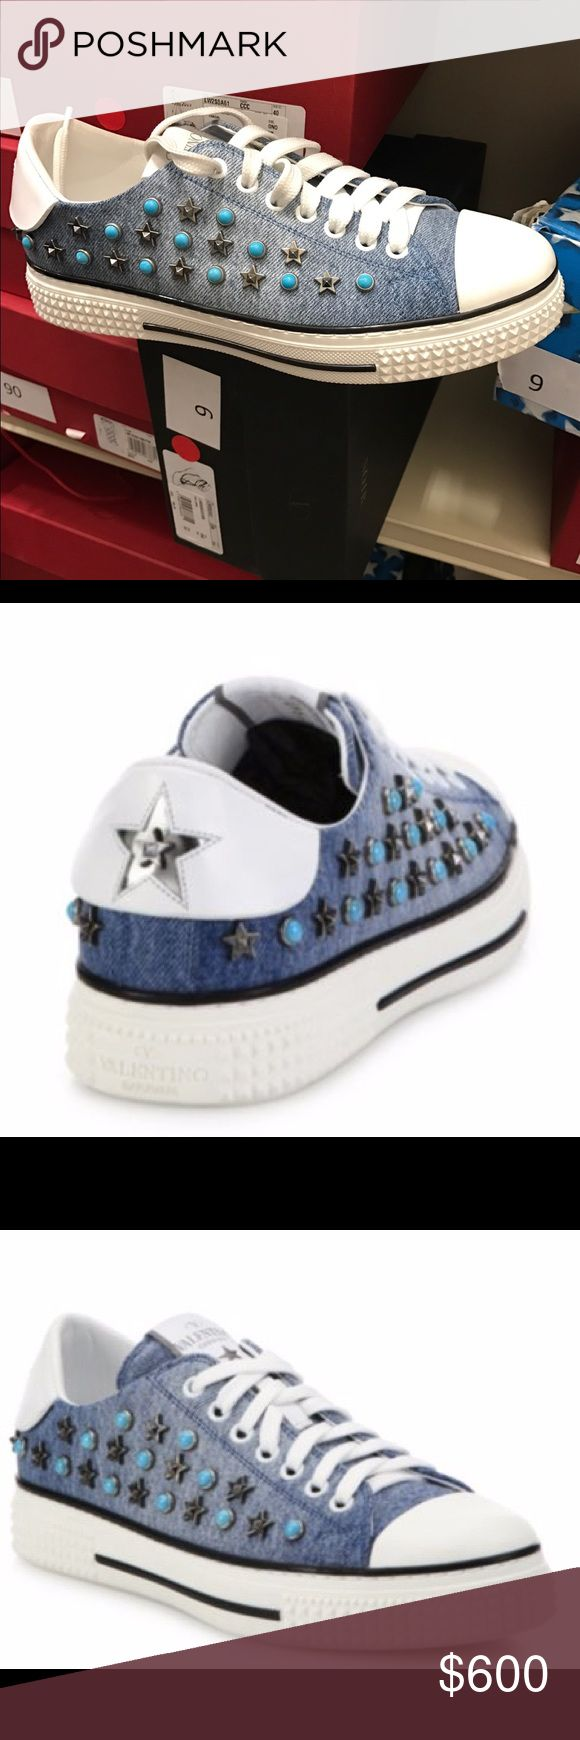 Valentino star-studded denim sneakers size: 38 Valentino star-studded denim sneakers size: 38. Brand new, never worn. Purchased from Saks. Comes with everything (box/dust bag). Purchased from final sale and changed my mind! Valentino Shoes Sneakers